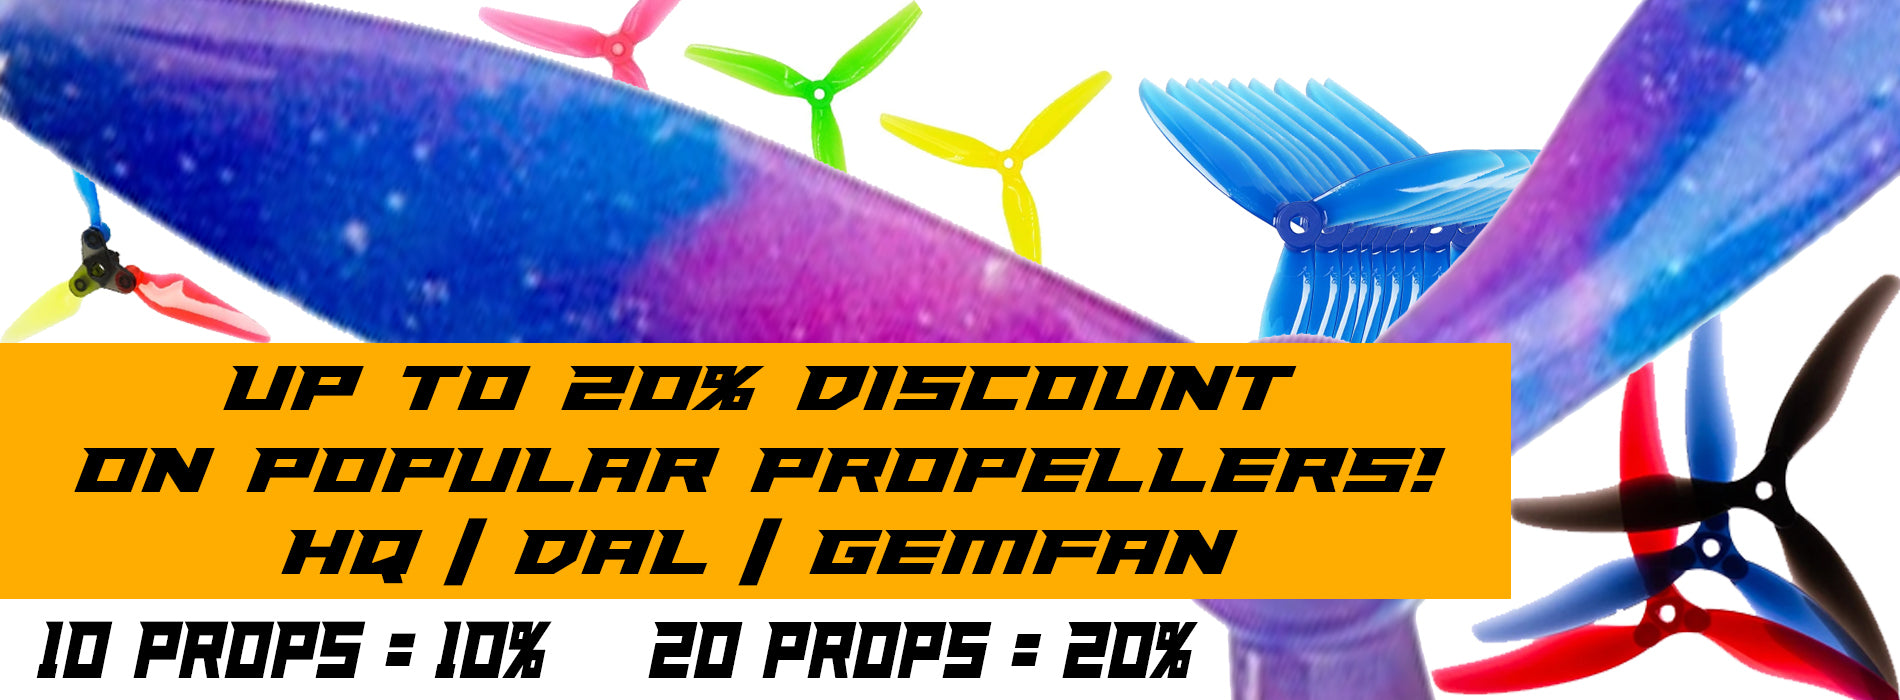 Up to 20 percent off props